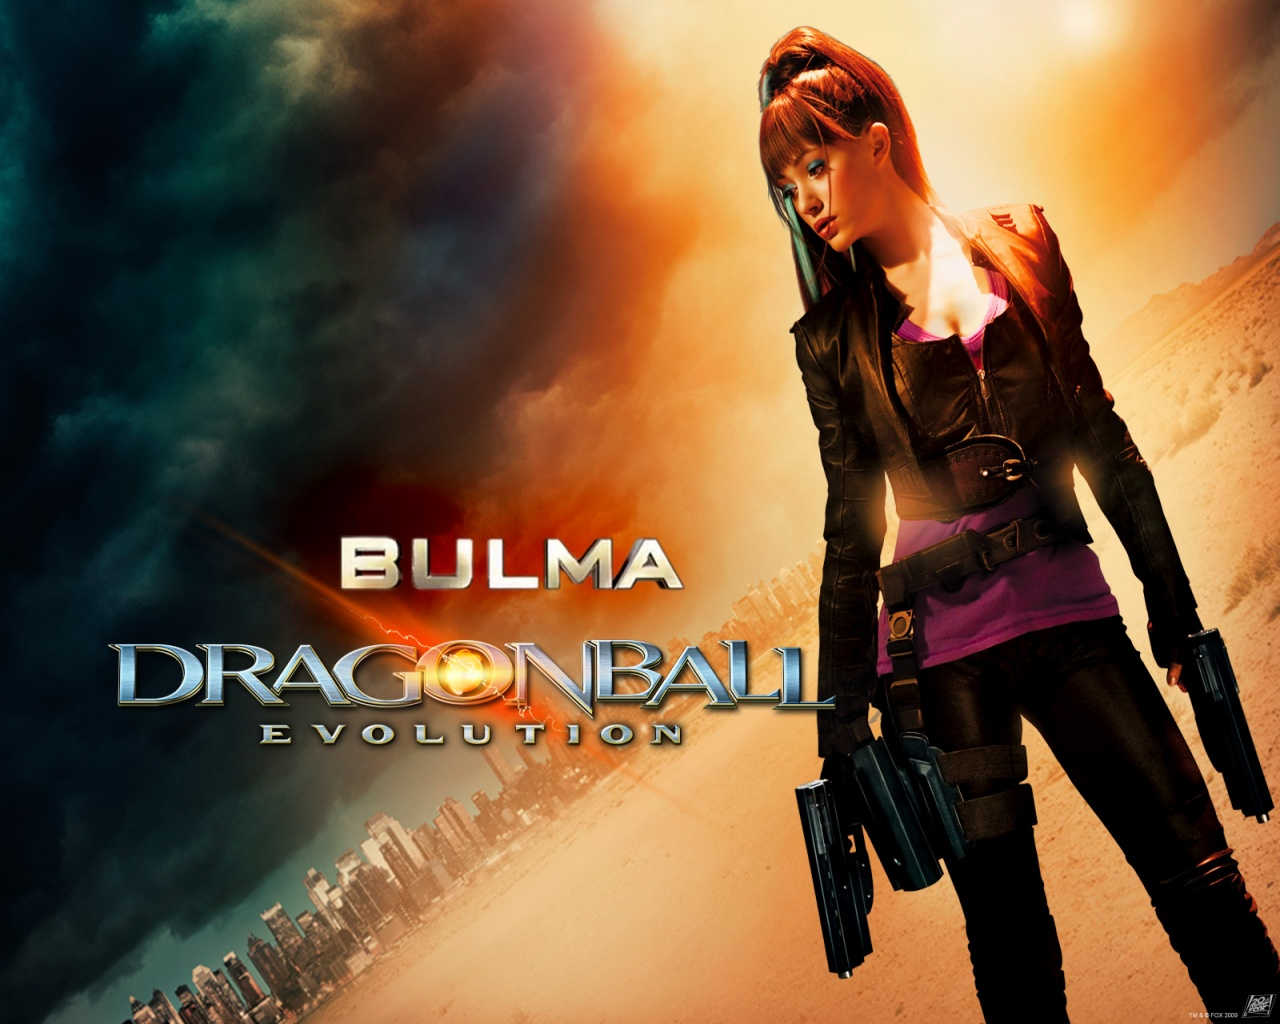 bulma dragon ball #4231912, 1600x1200 | all for desktop